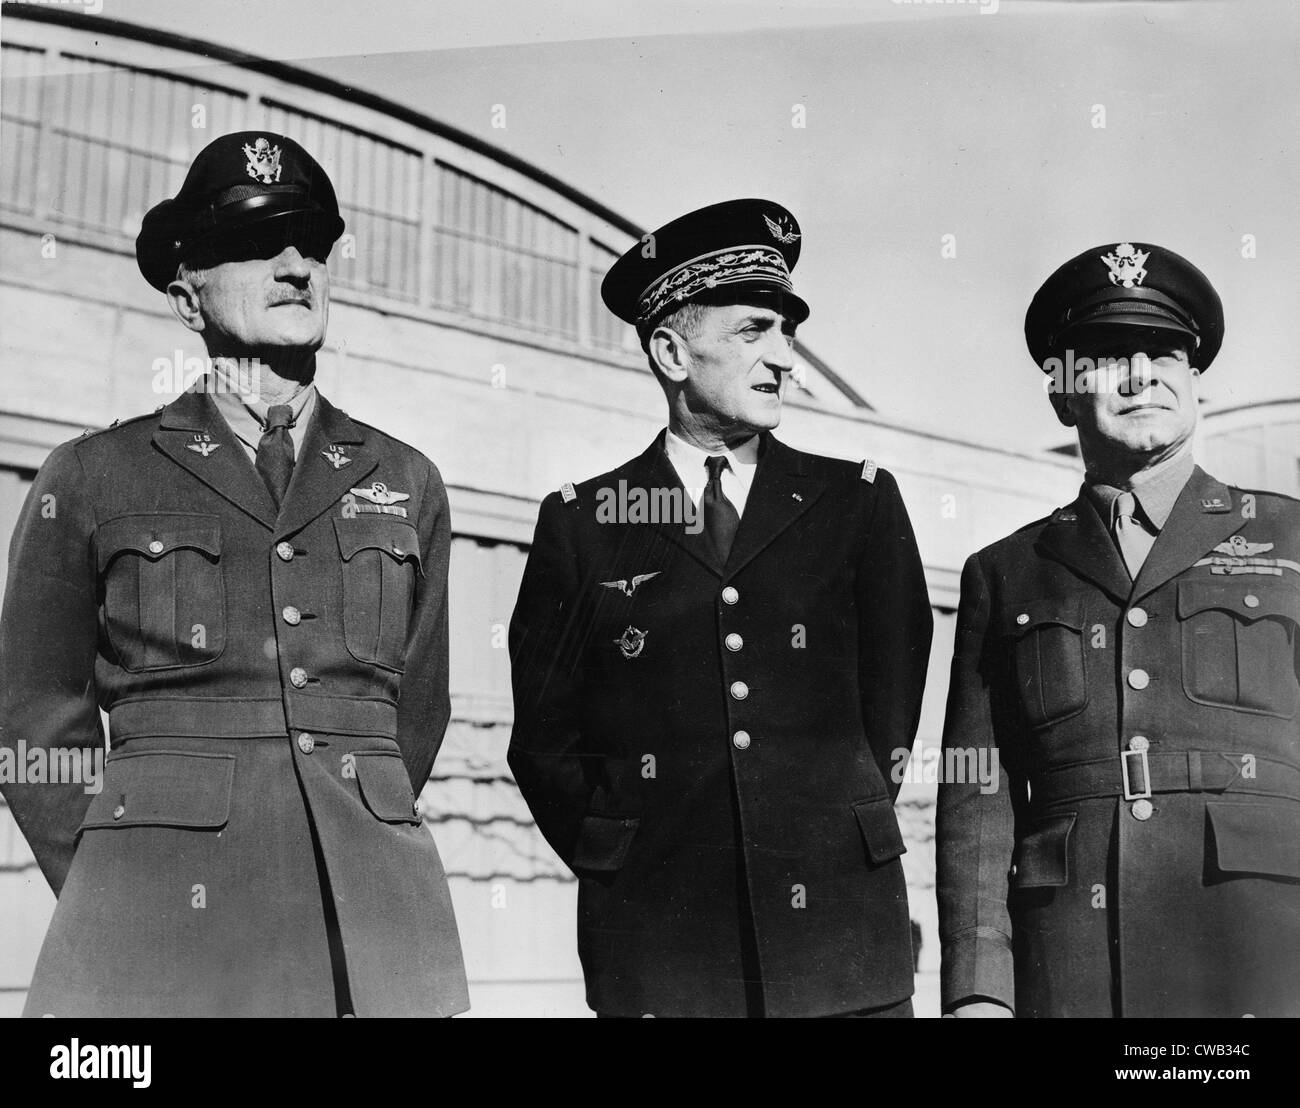 World War II, Major General James Doolittle, United States Army Air Forces, Major-General Jean Bergeret of Fighting - Stock Image